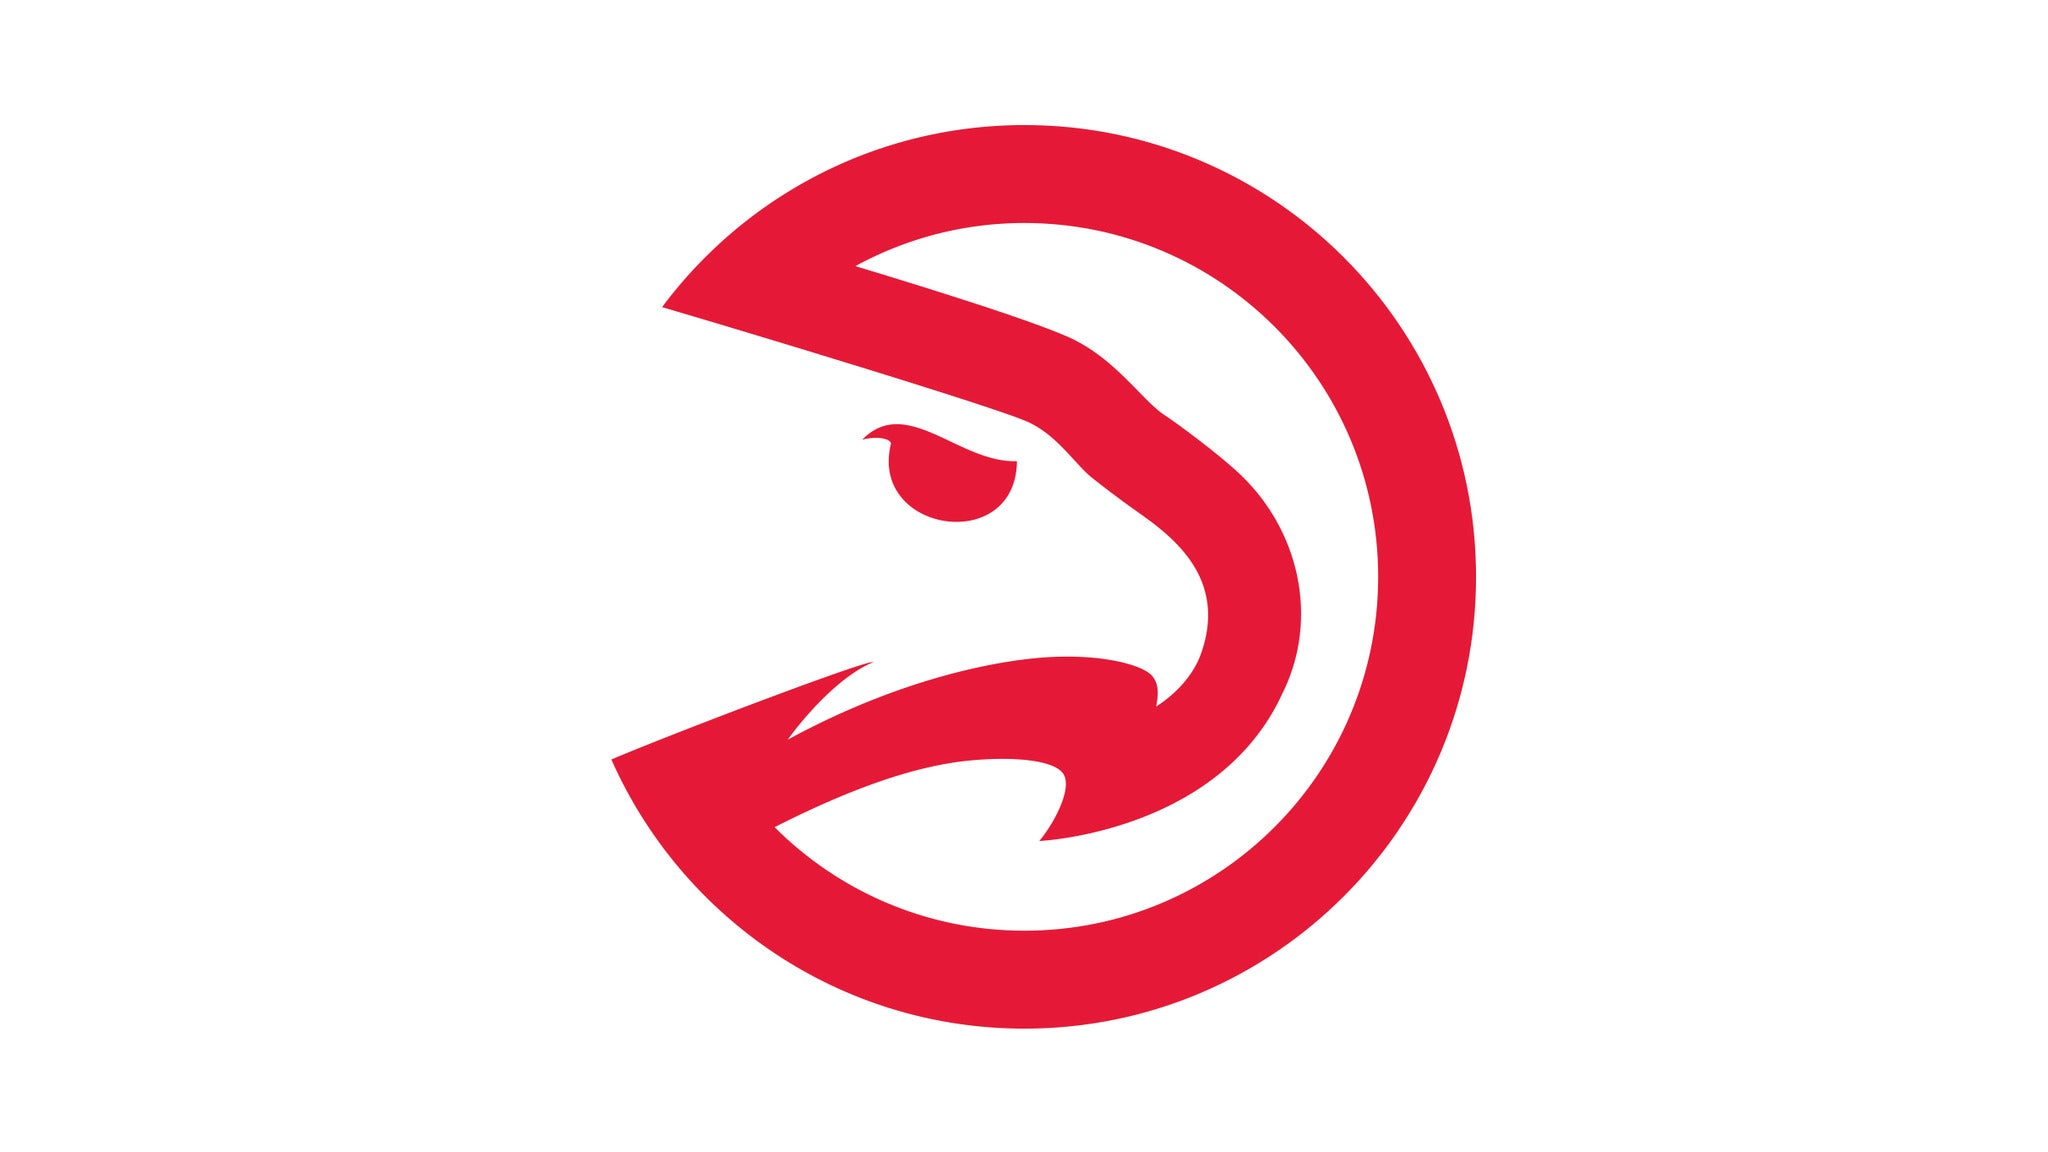 Atlanta Hawks v San Antonio Spurs at Philips Arena - Atlanta, GA 30303